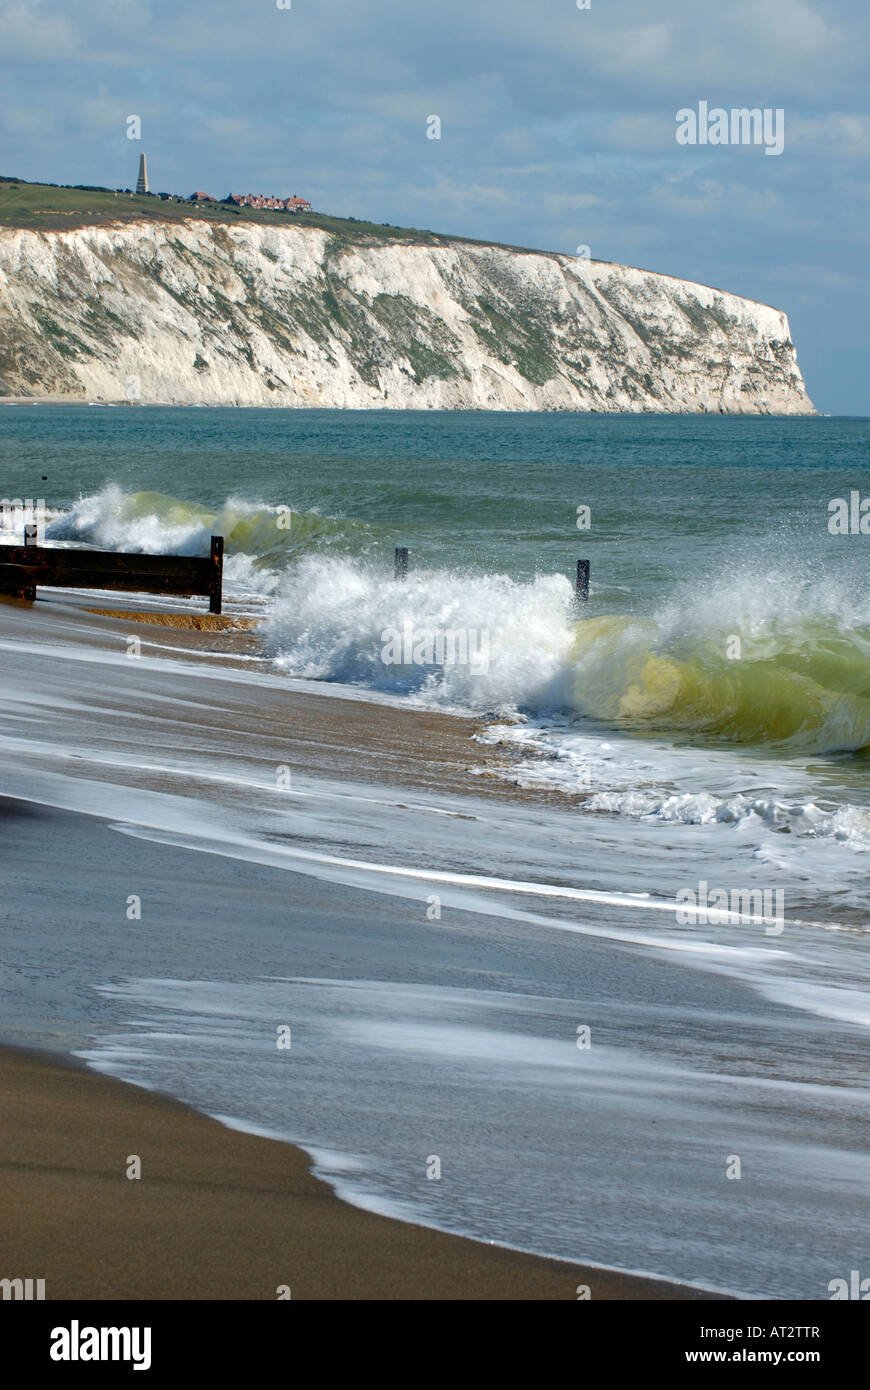 the sandy beach with waves breaking over the groynes and sea defences with cliffs in the background at sandown yaverland - Stock Image